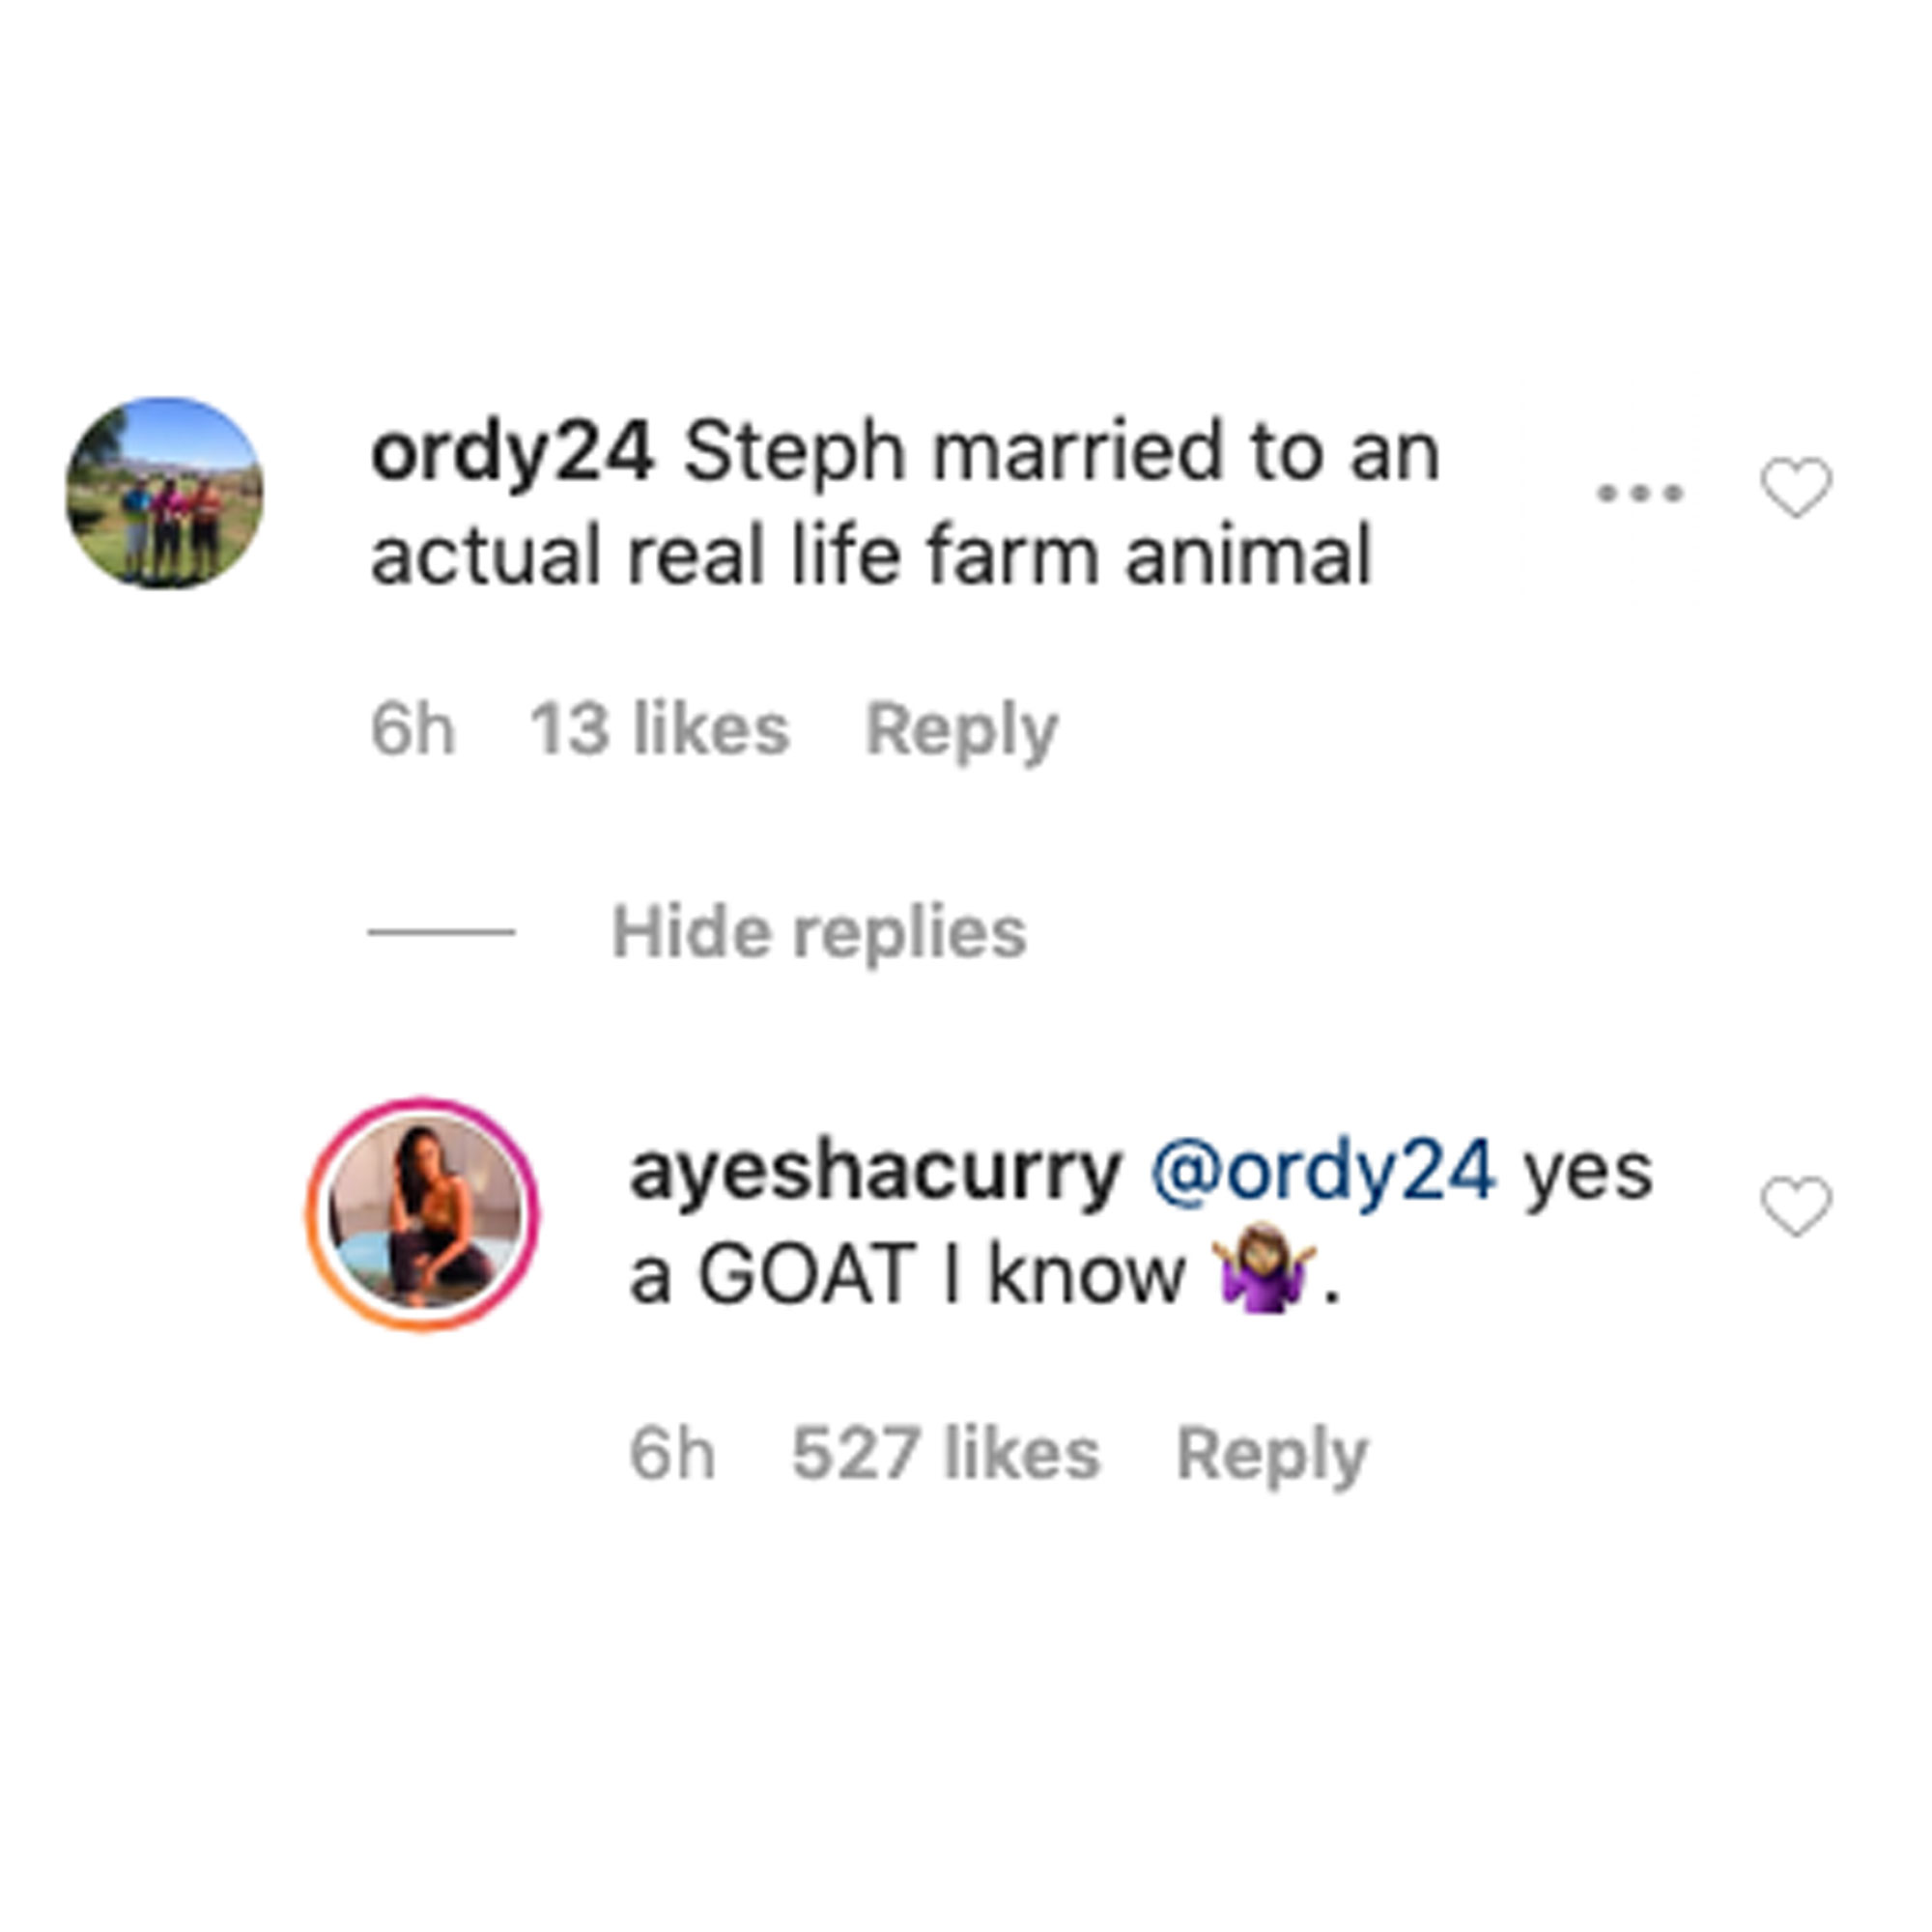 Ayesha Curry Claps Back at Troll Who Called Her a 'Farm Animal' After Viral Photo With Stephen Curry